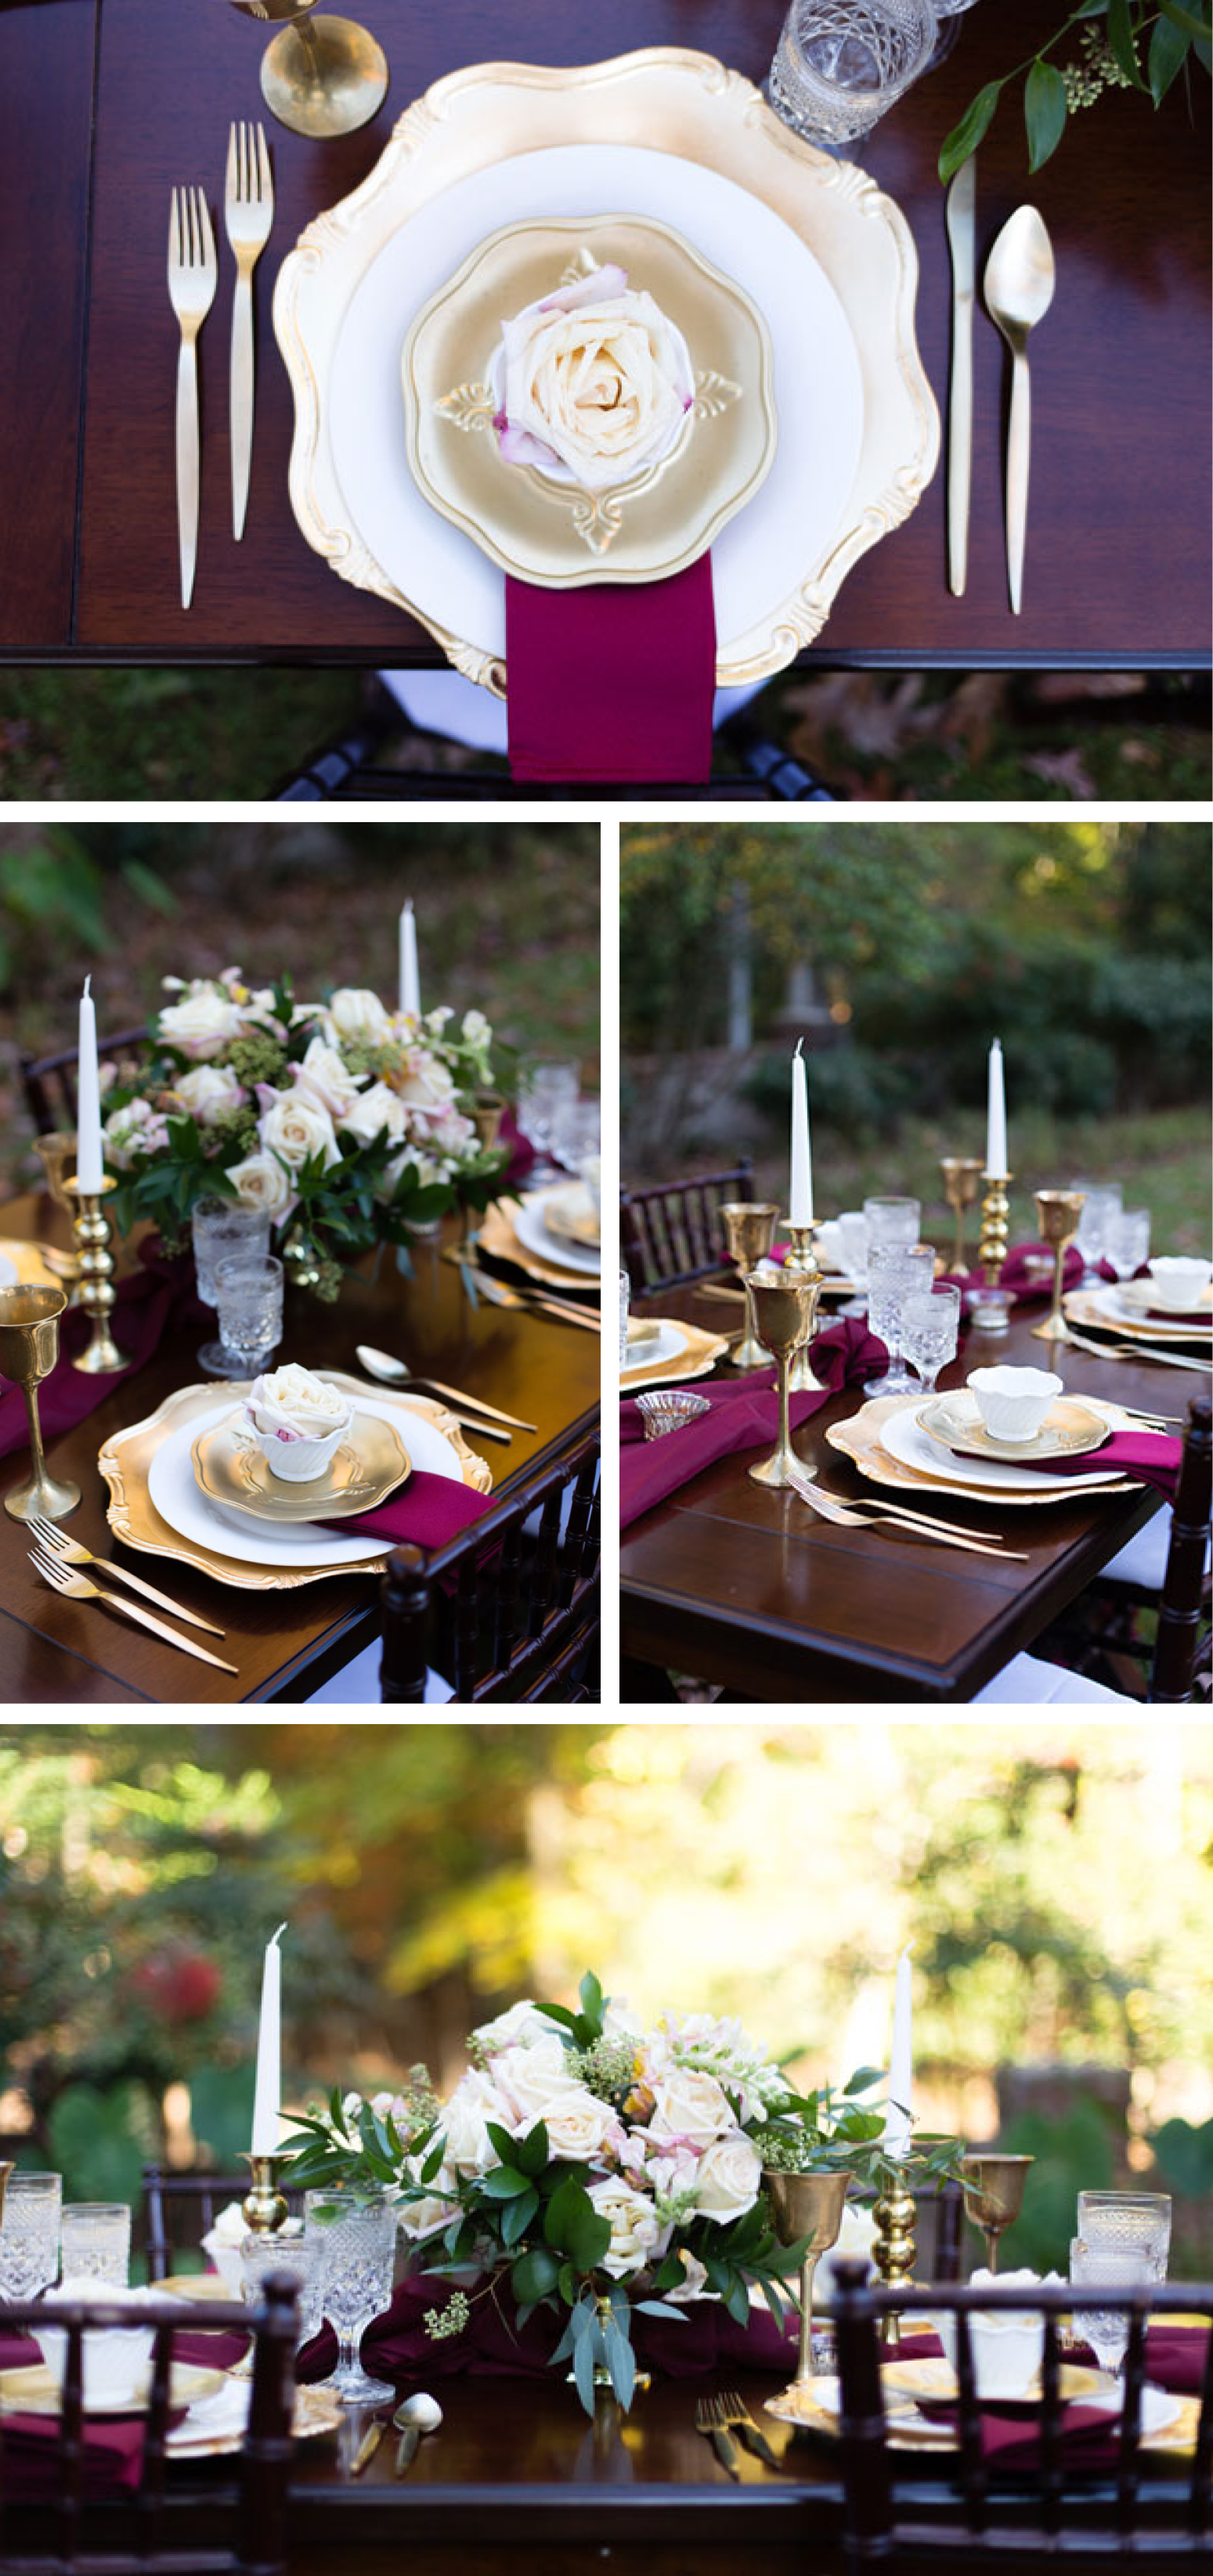 Raspberry-and-Gold-Vow-Renewal_Styled-Shoot-DC-Wedding10.jpg